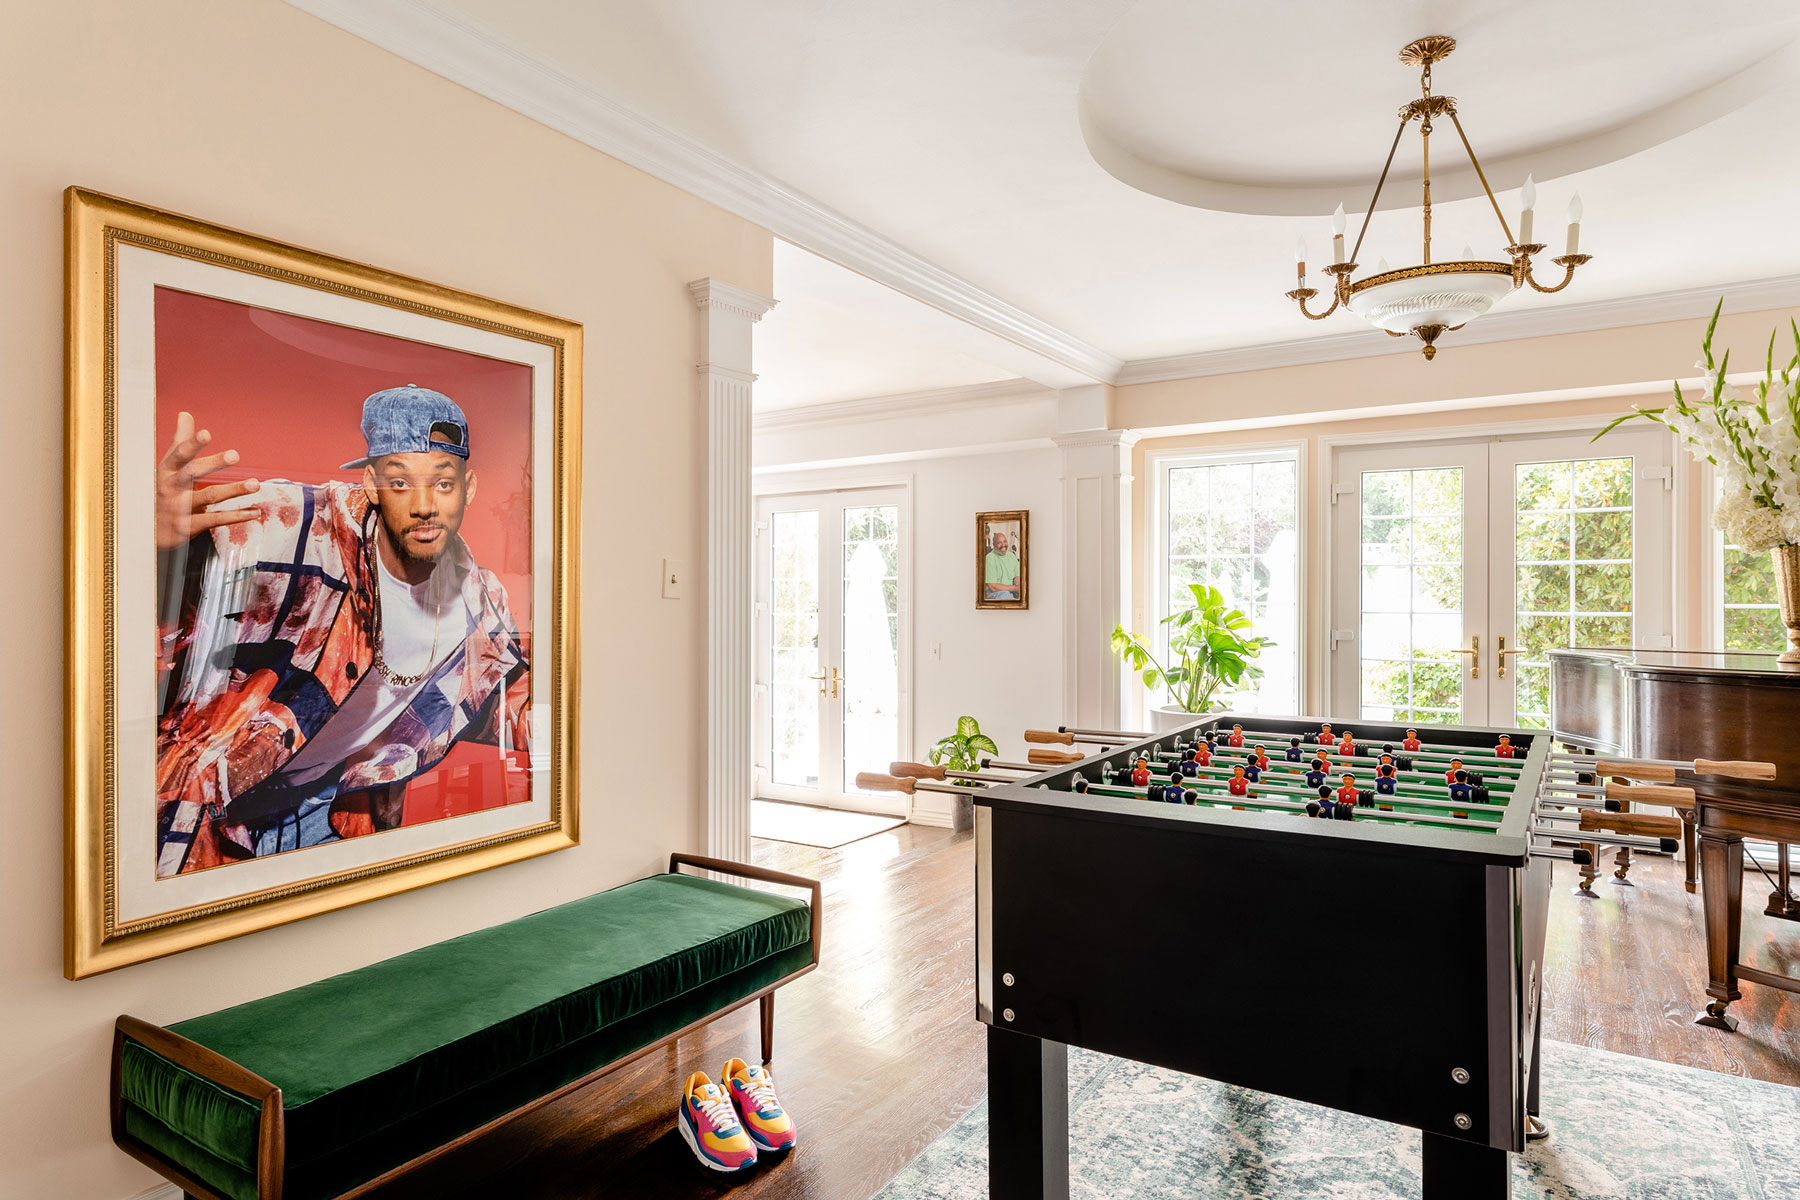 Foozball table and portrait of Will Smith